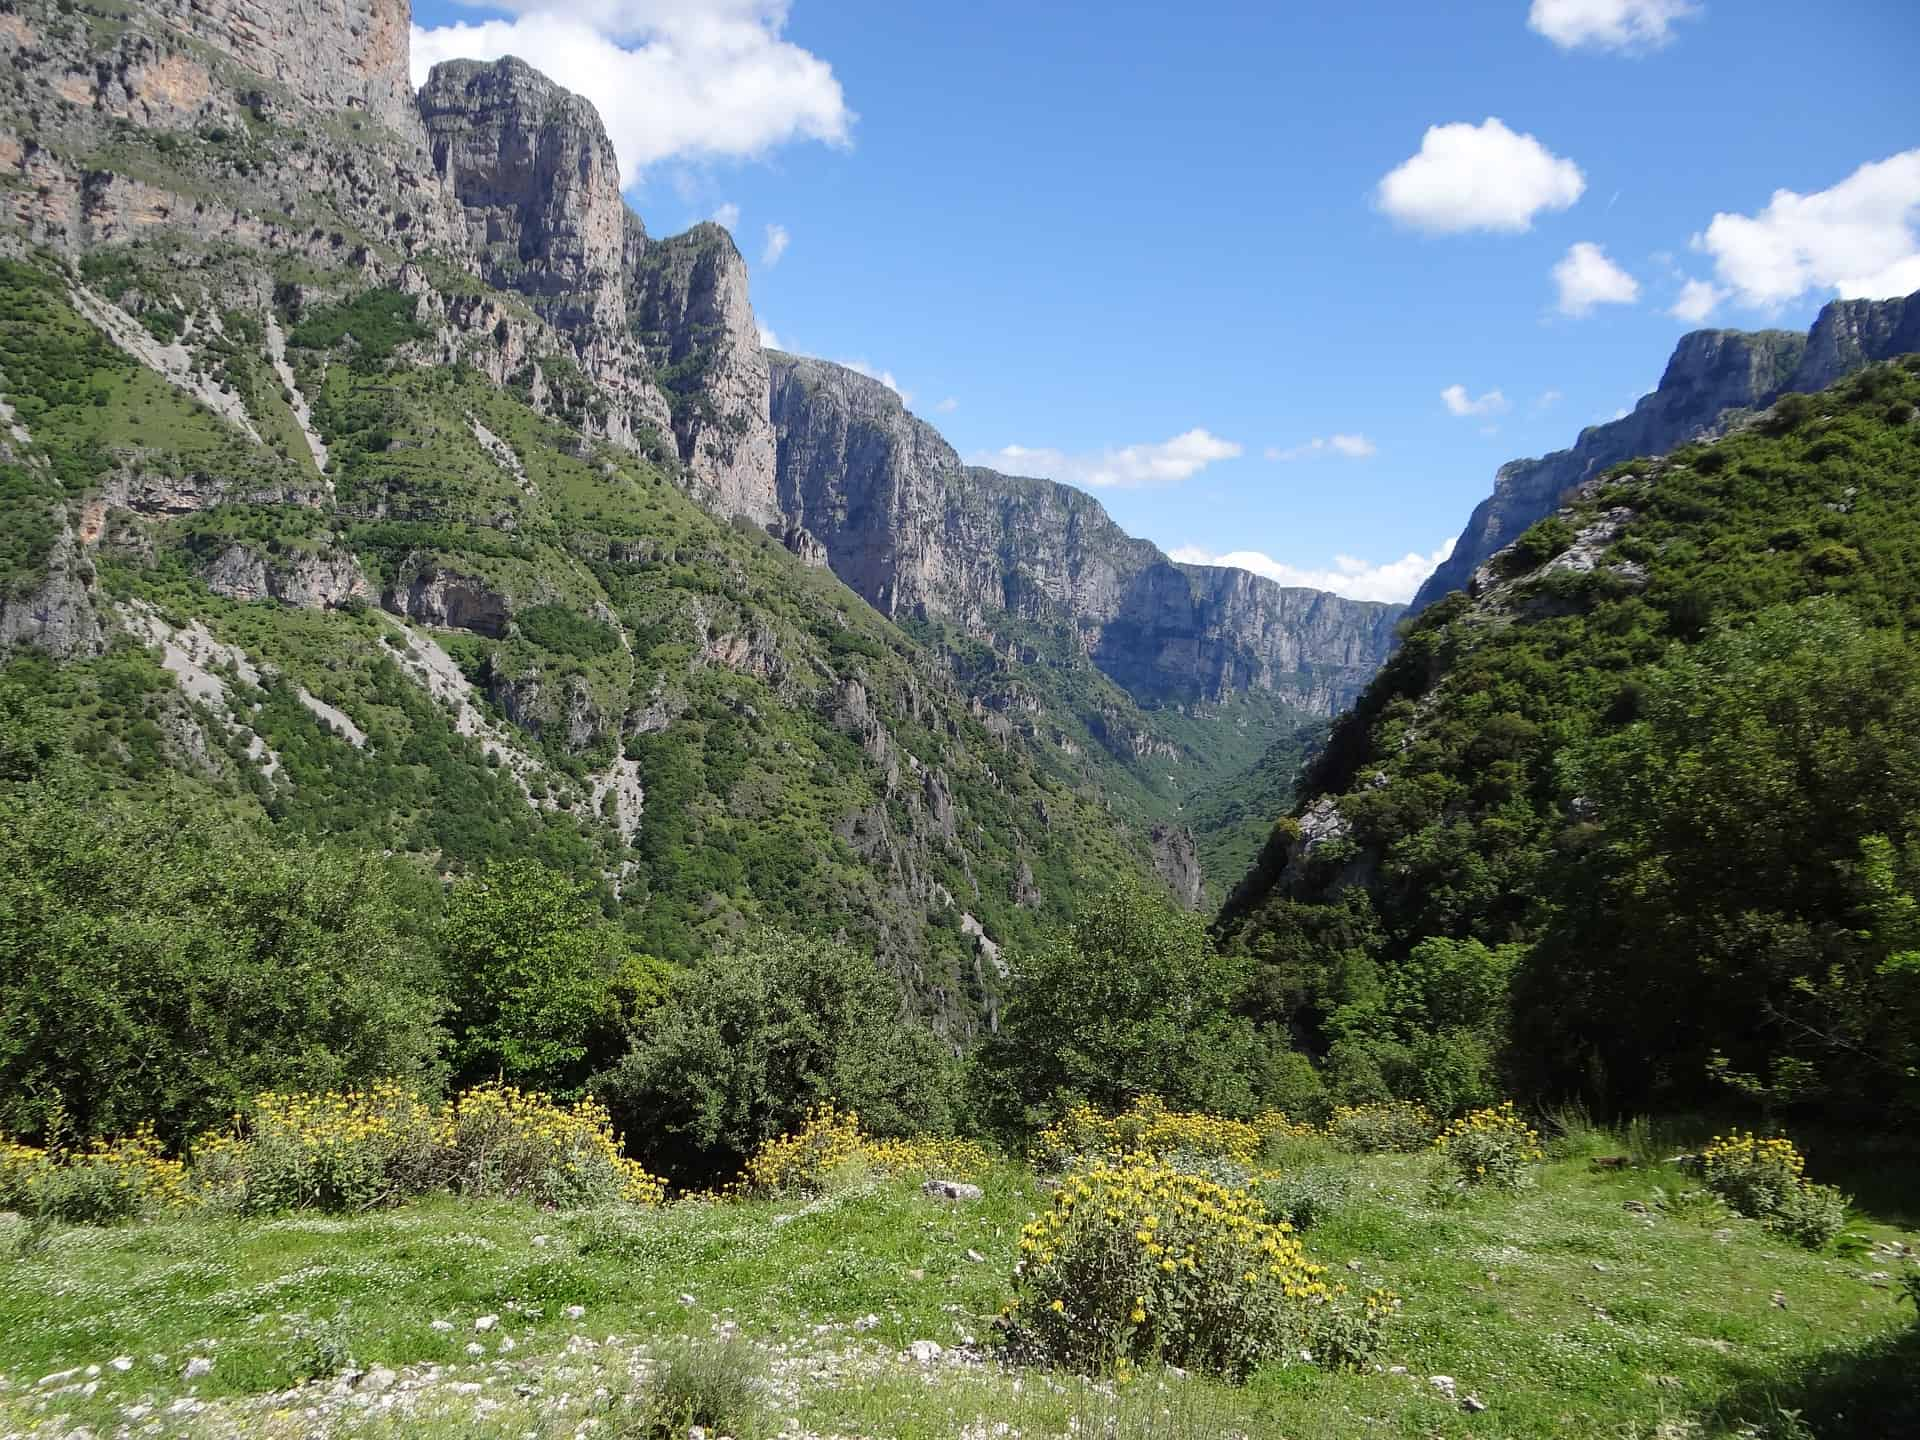 Vikos Gorge Hiking in Greece